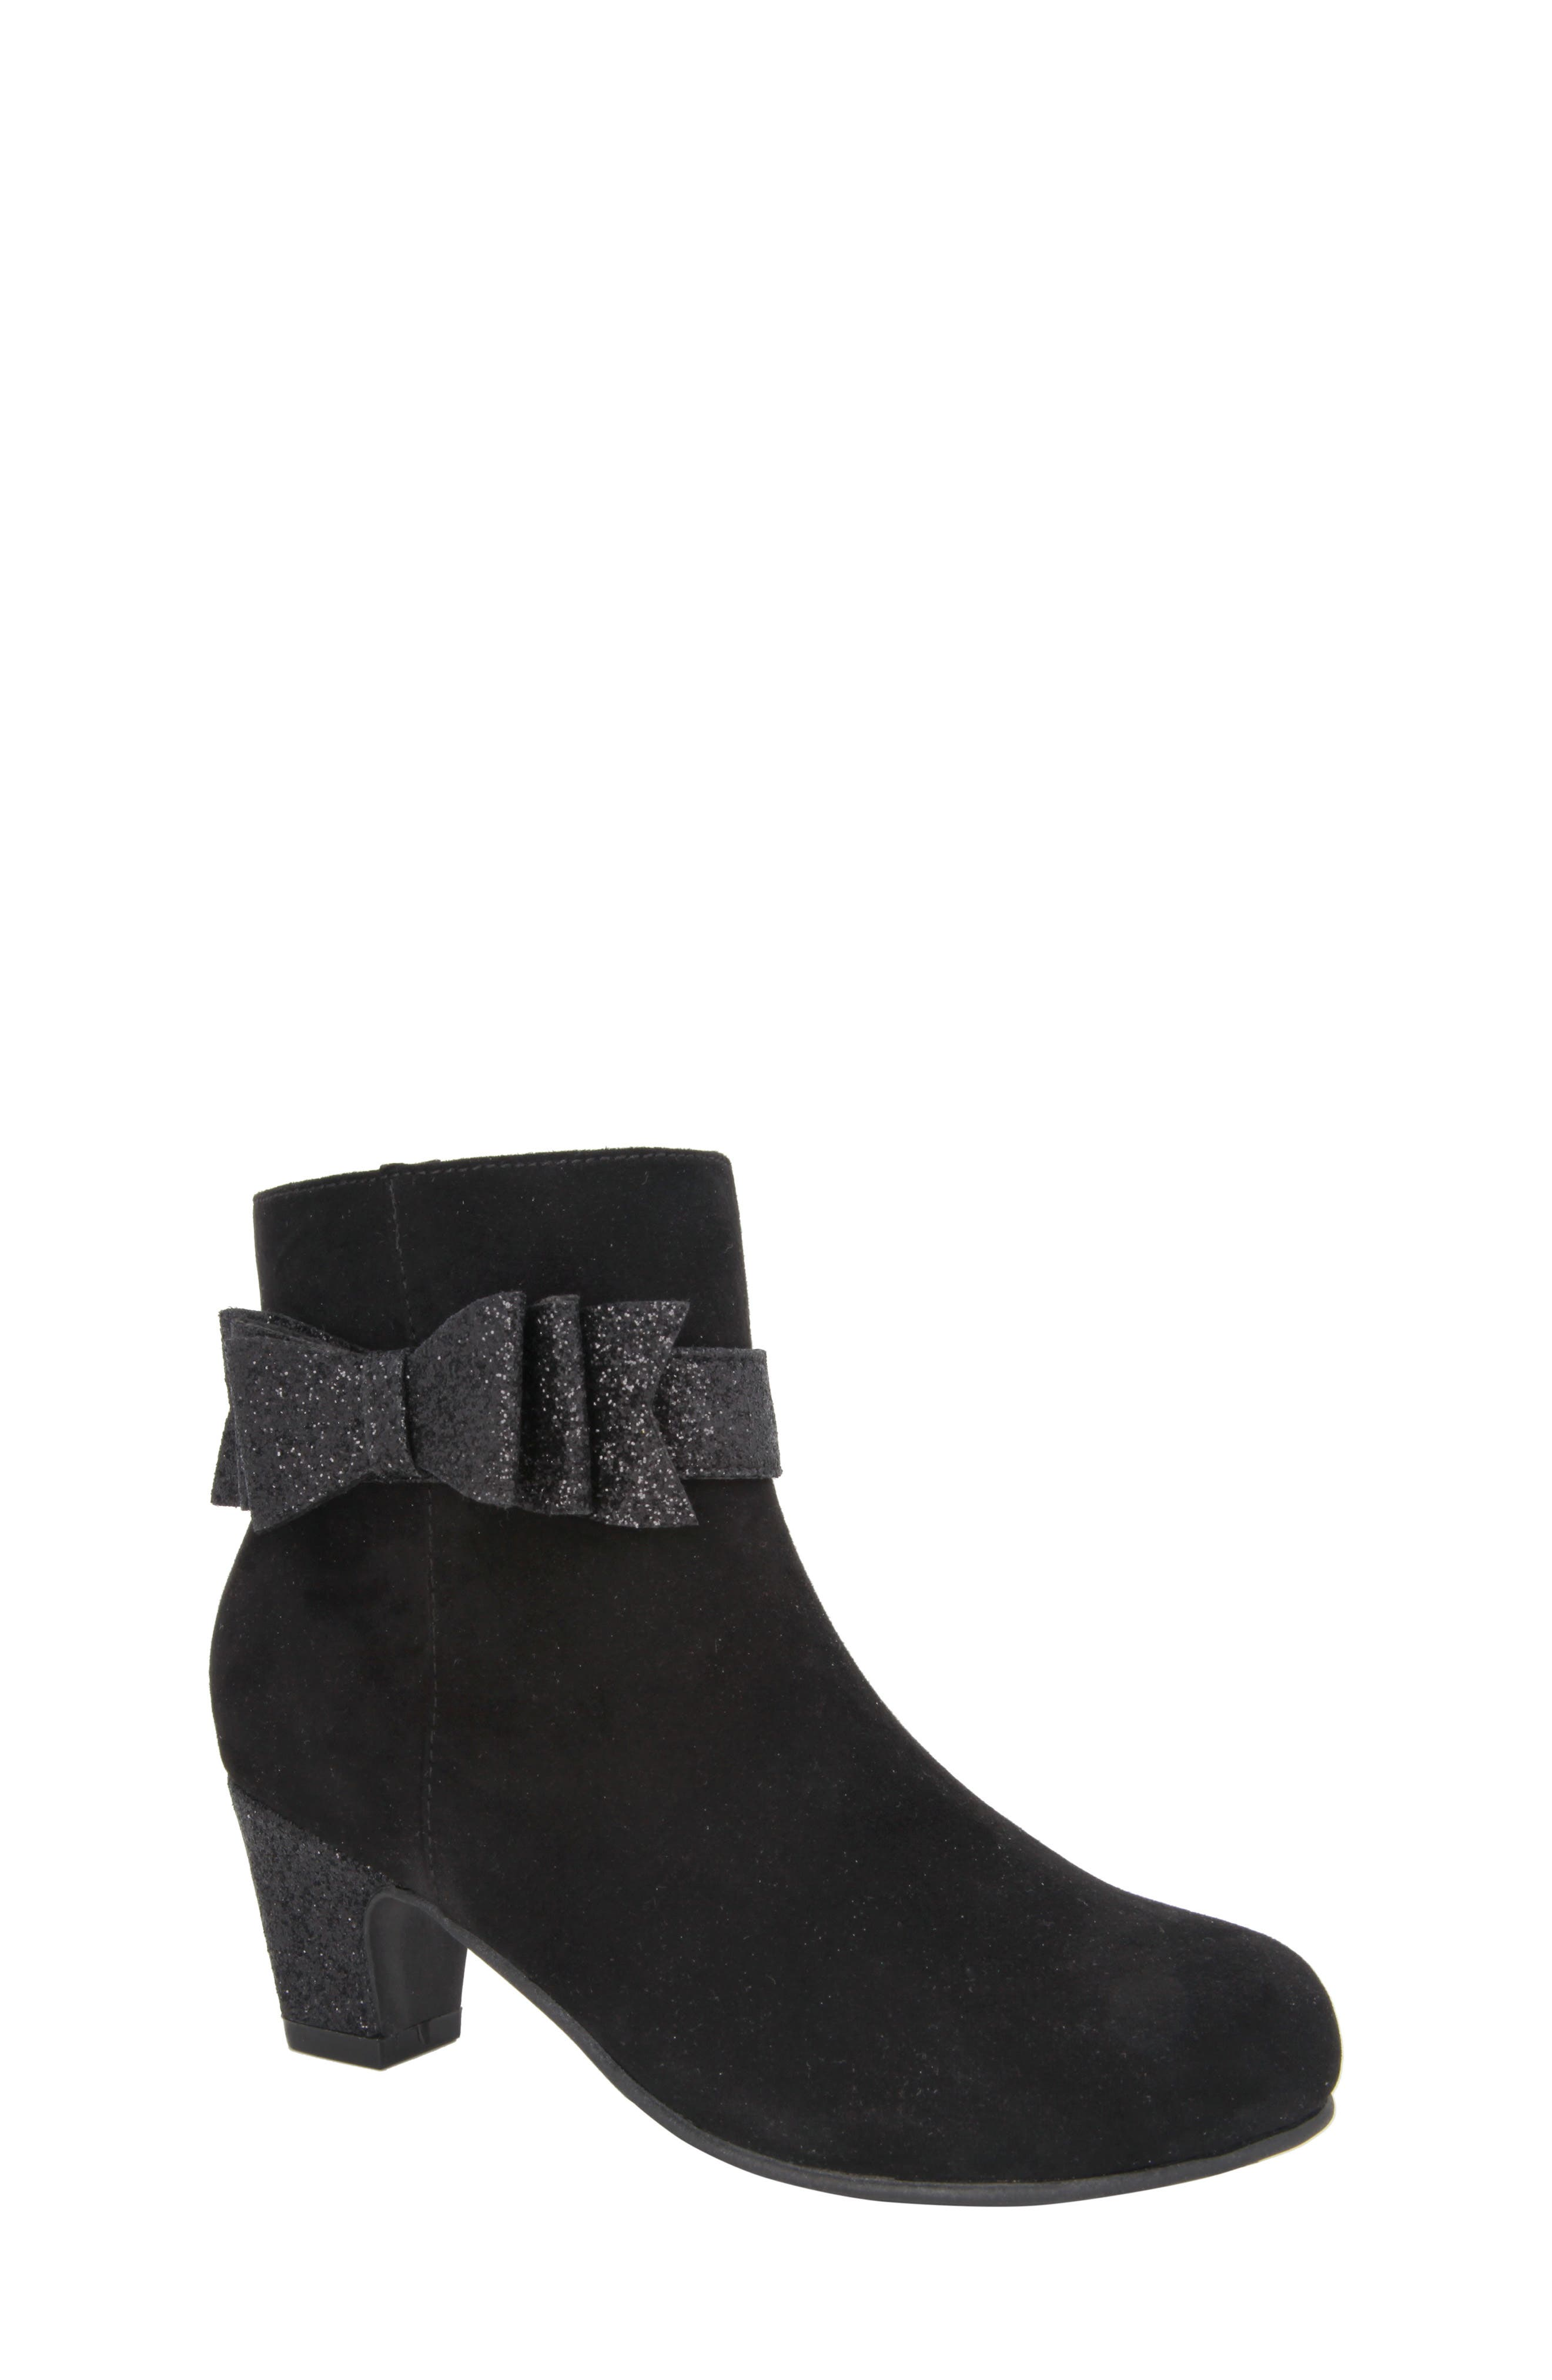 Glitter Bow Bootie,                             Main thumbnail 1, color,                             Black Suede/ Glitter